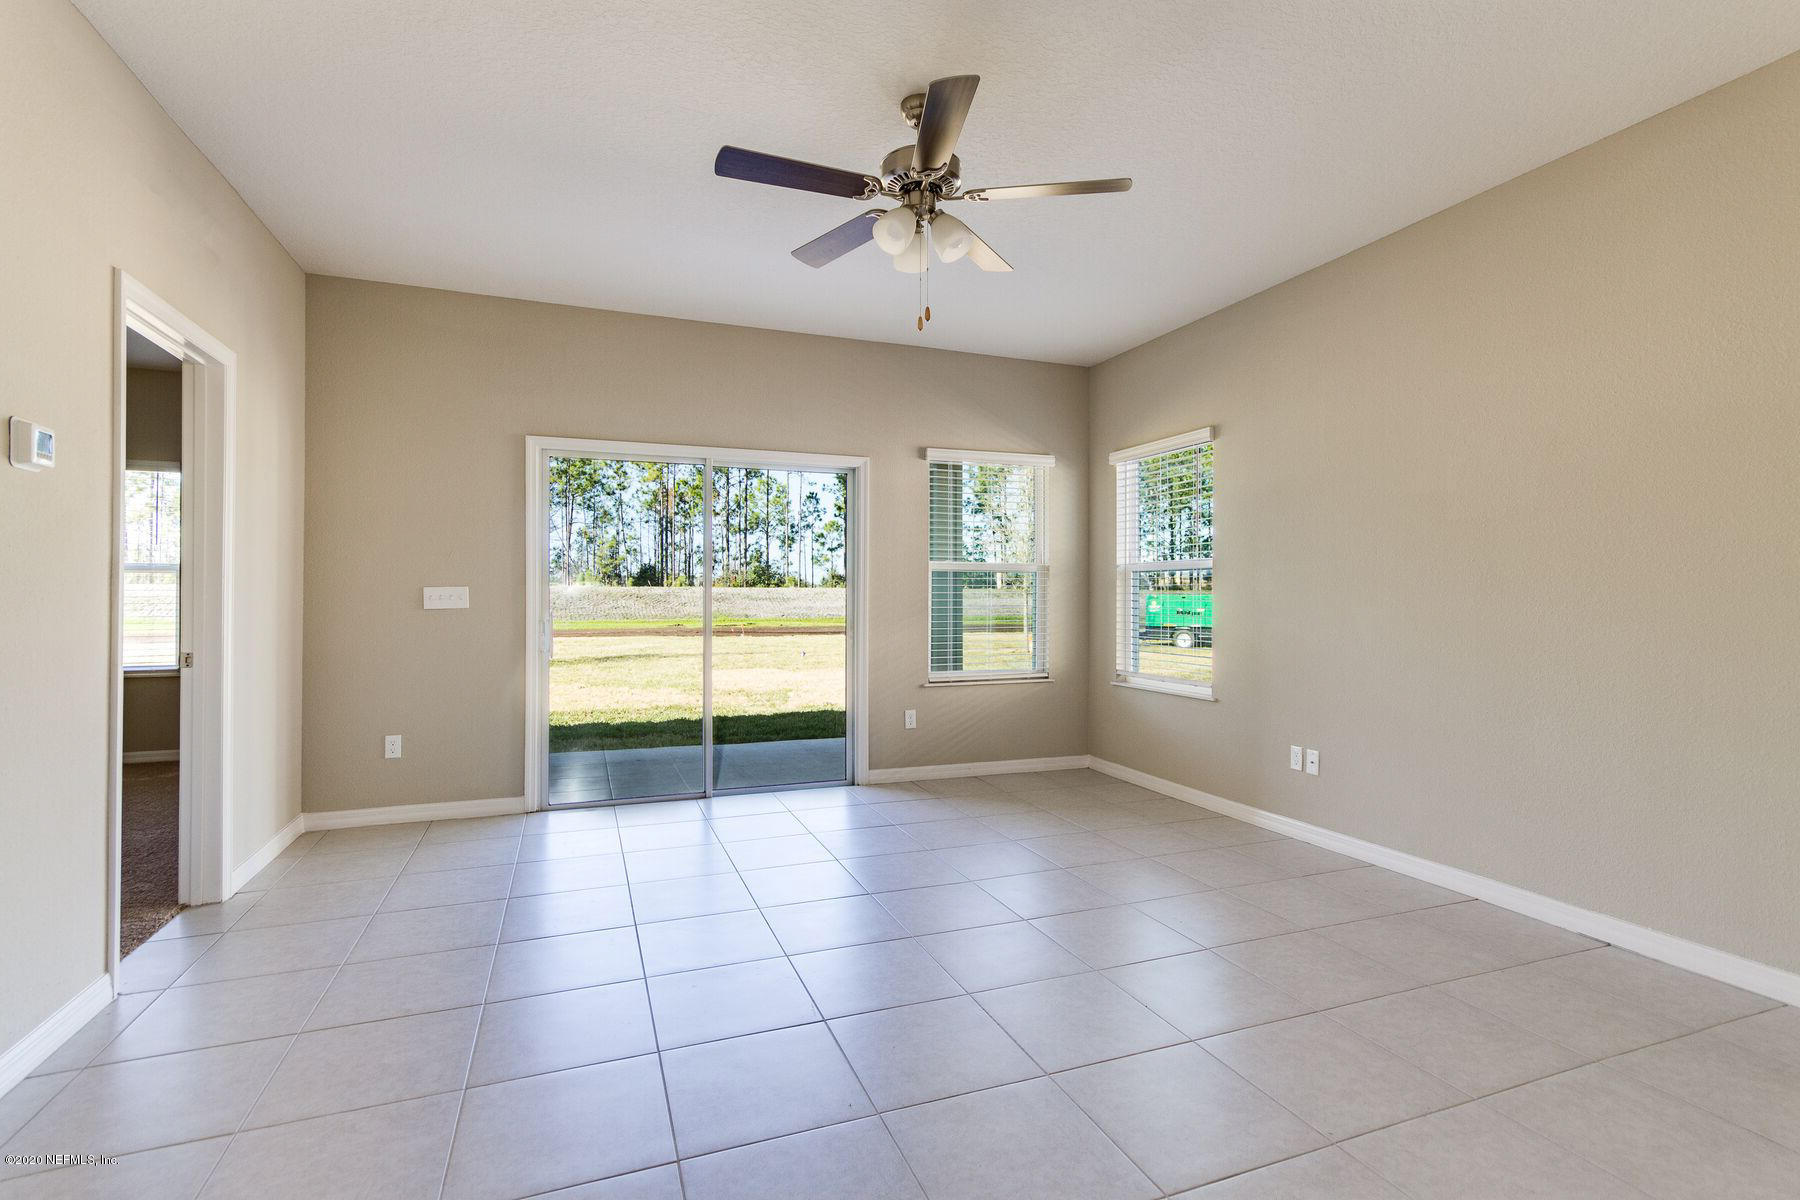 275 FELLBROOK, ST AUGUSTINE, FLORIDA 32095, 3 Bedrooms Bedrooms, ,2 BathroomsBathrooms,Residential,For sale,FELLBROOK,1081473